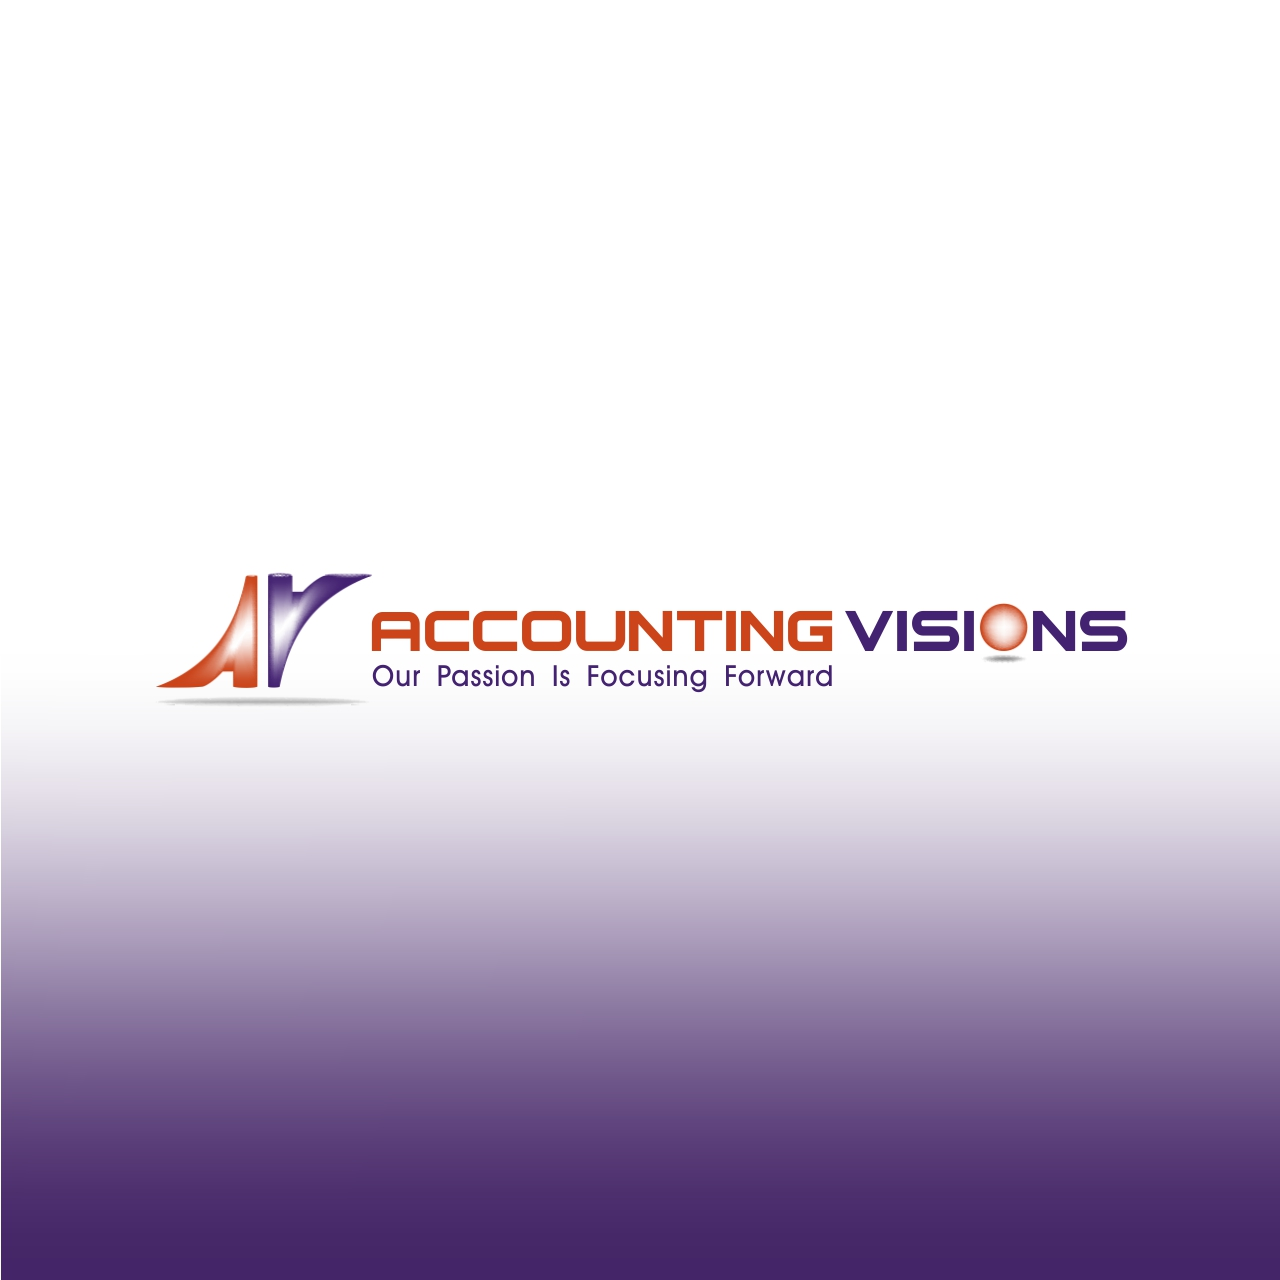 Logo Design by martinz - Entry No. 52 in the Logo Design Contest Accounting Visions.